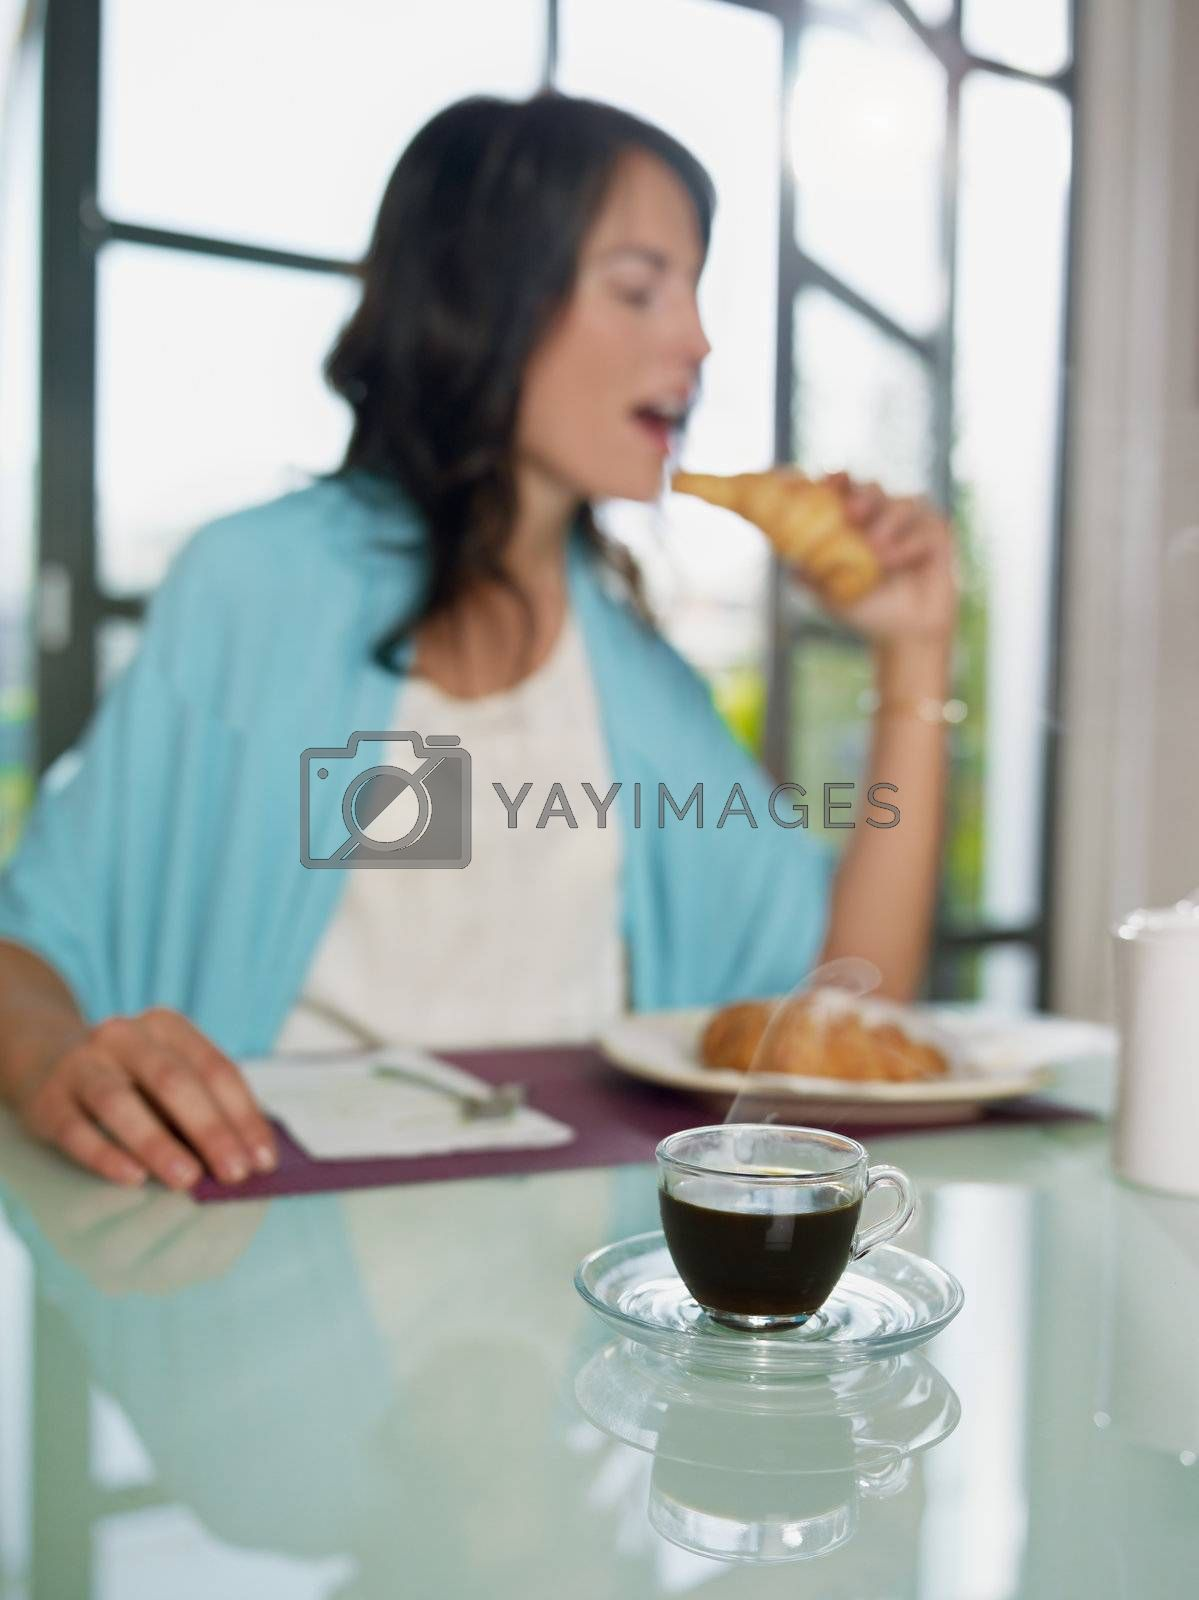 mid adult woman eating croissant at home. Vertical shape, copy space, focus on cup of coffee